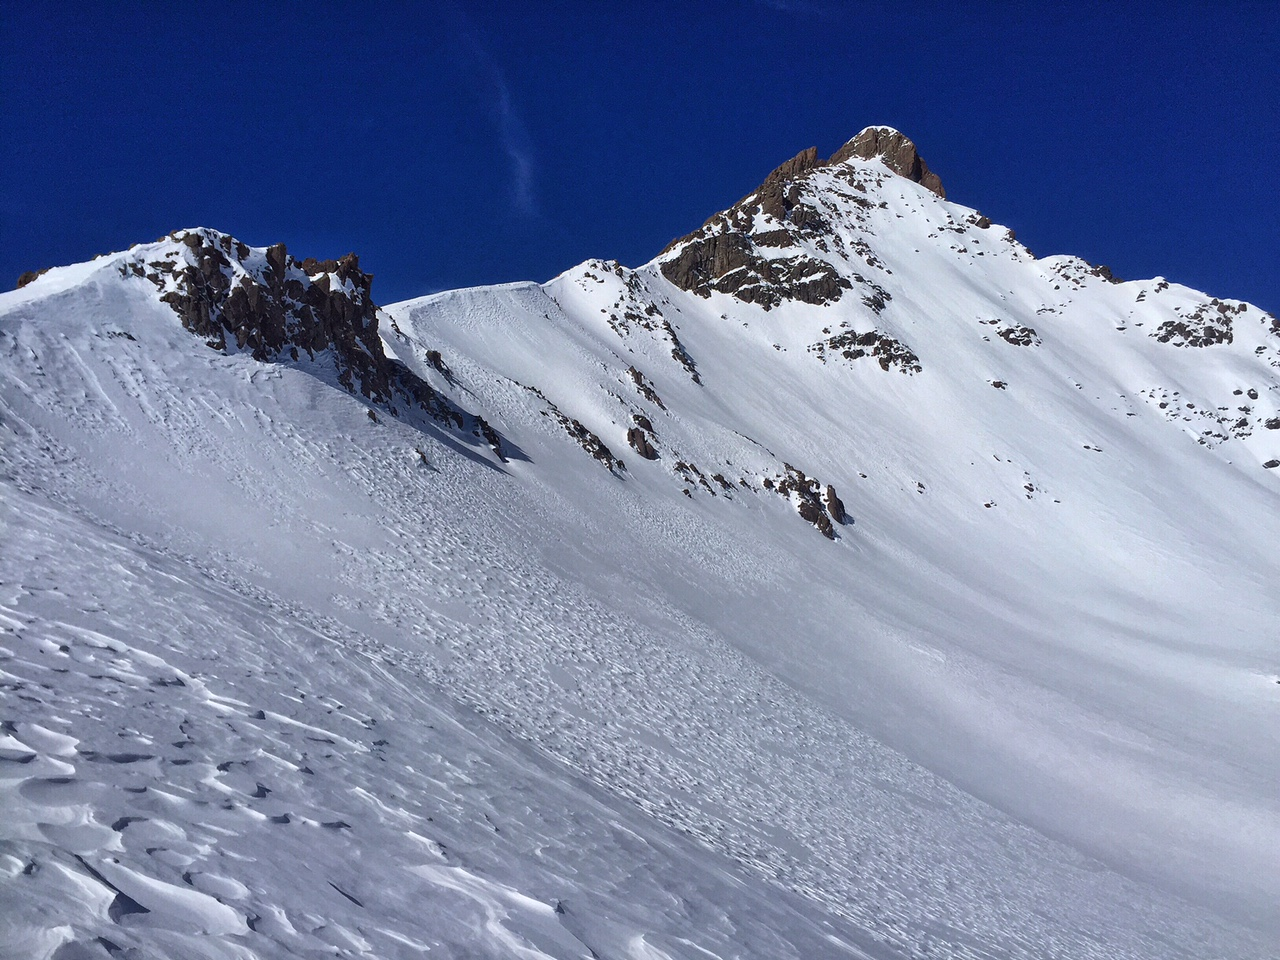 A nice look at the east face while ascending to the ridge.